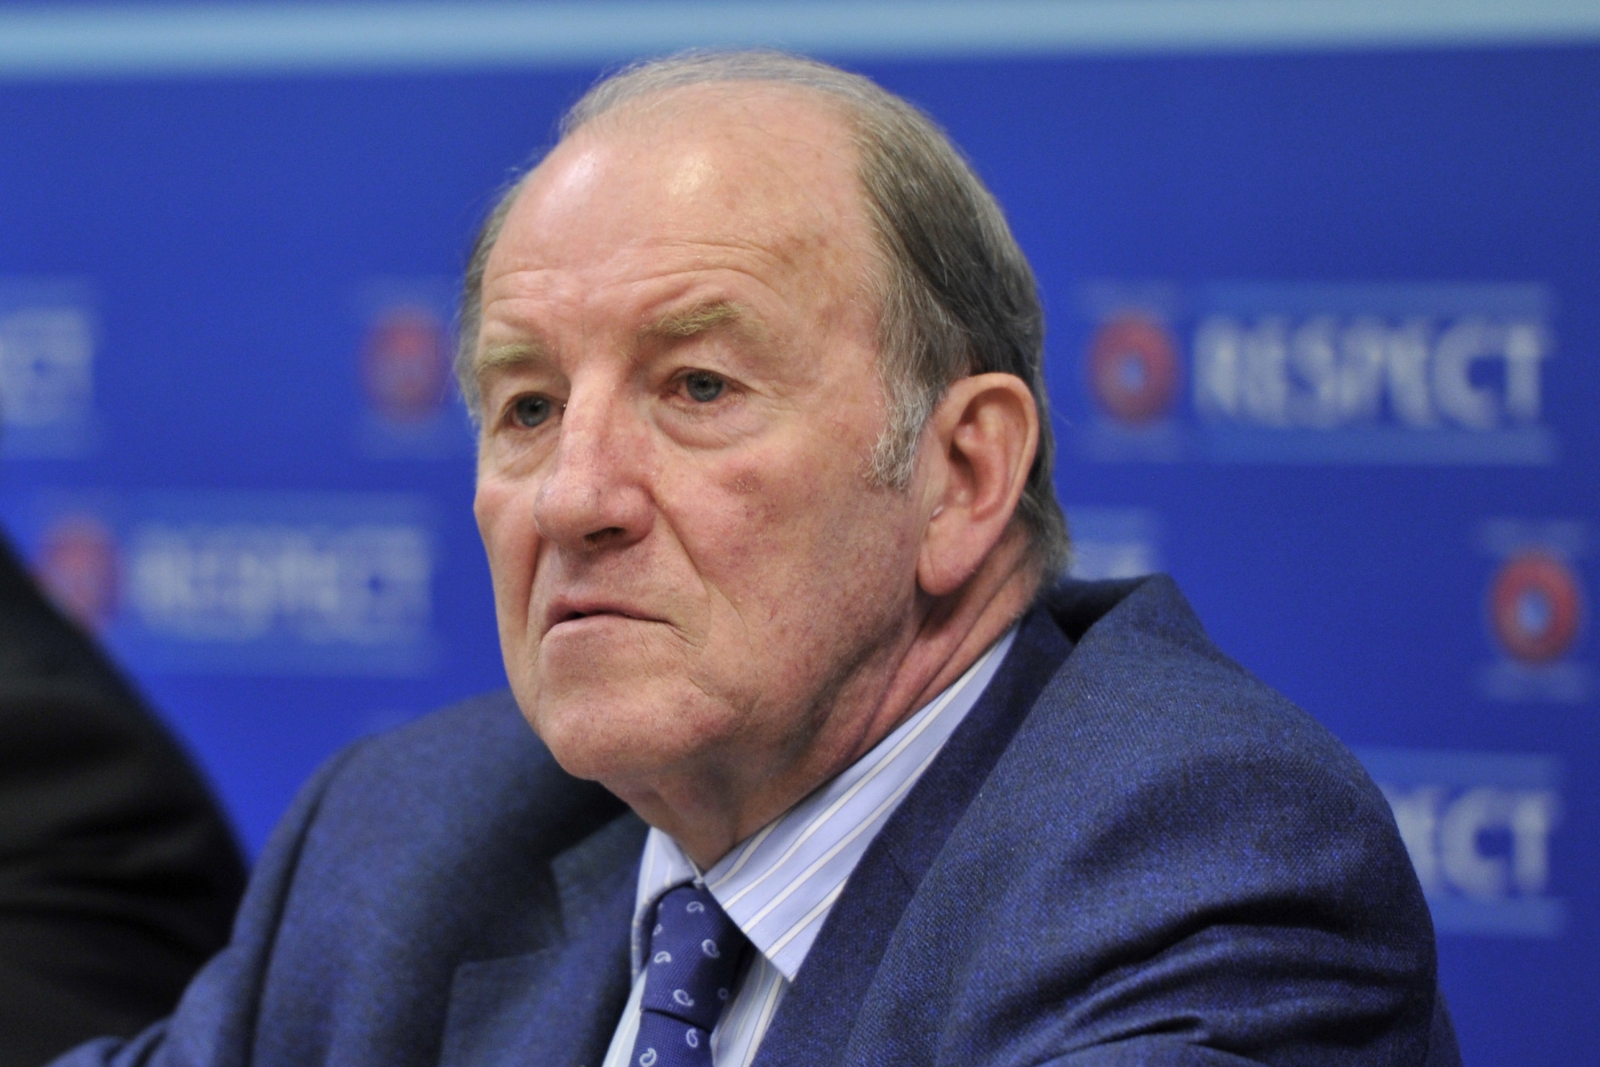 Euro 2016 organising committee president Jacques Lambert, who has warned of the terror threat in the wake of the recent attacks in Paris. (Getty)